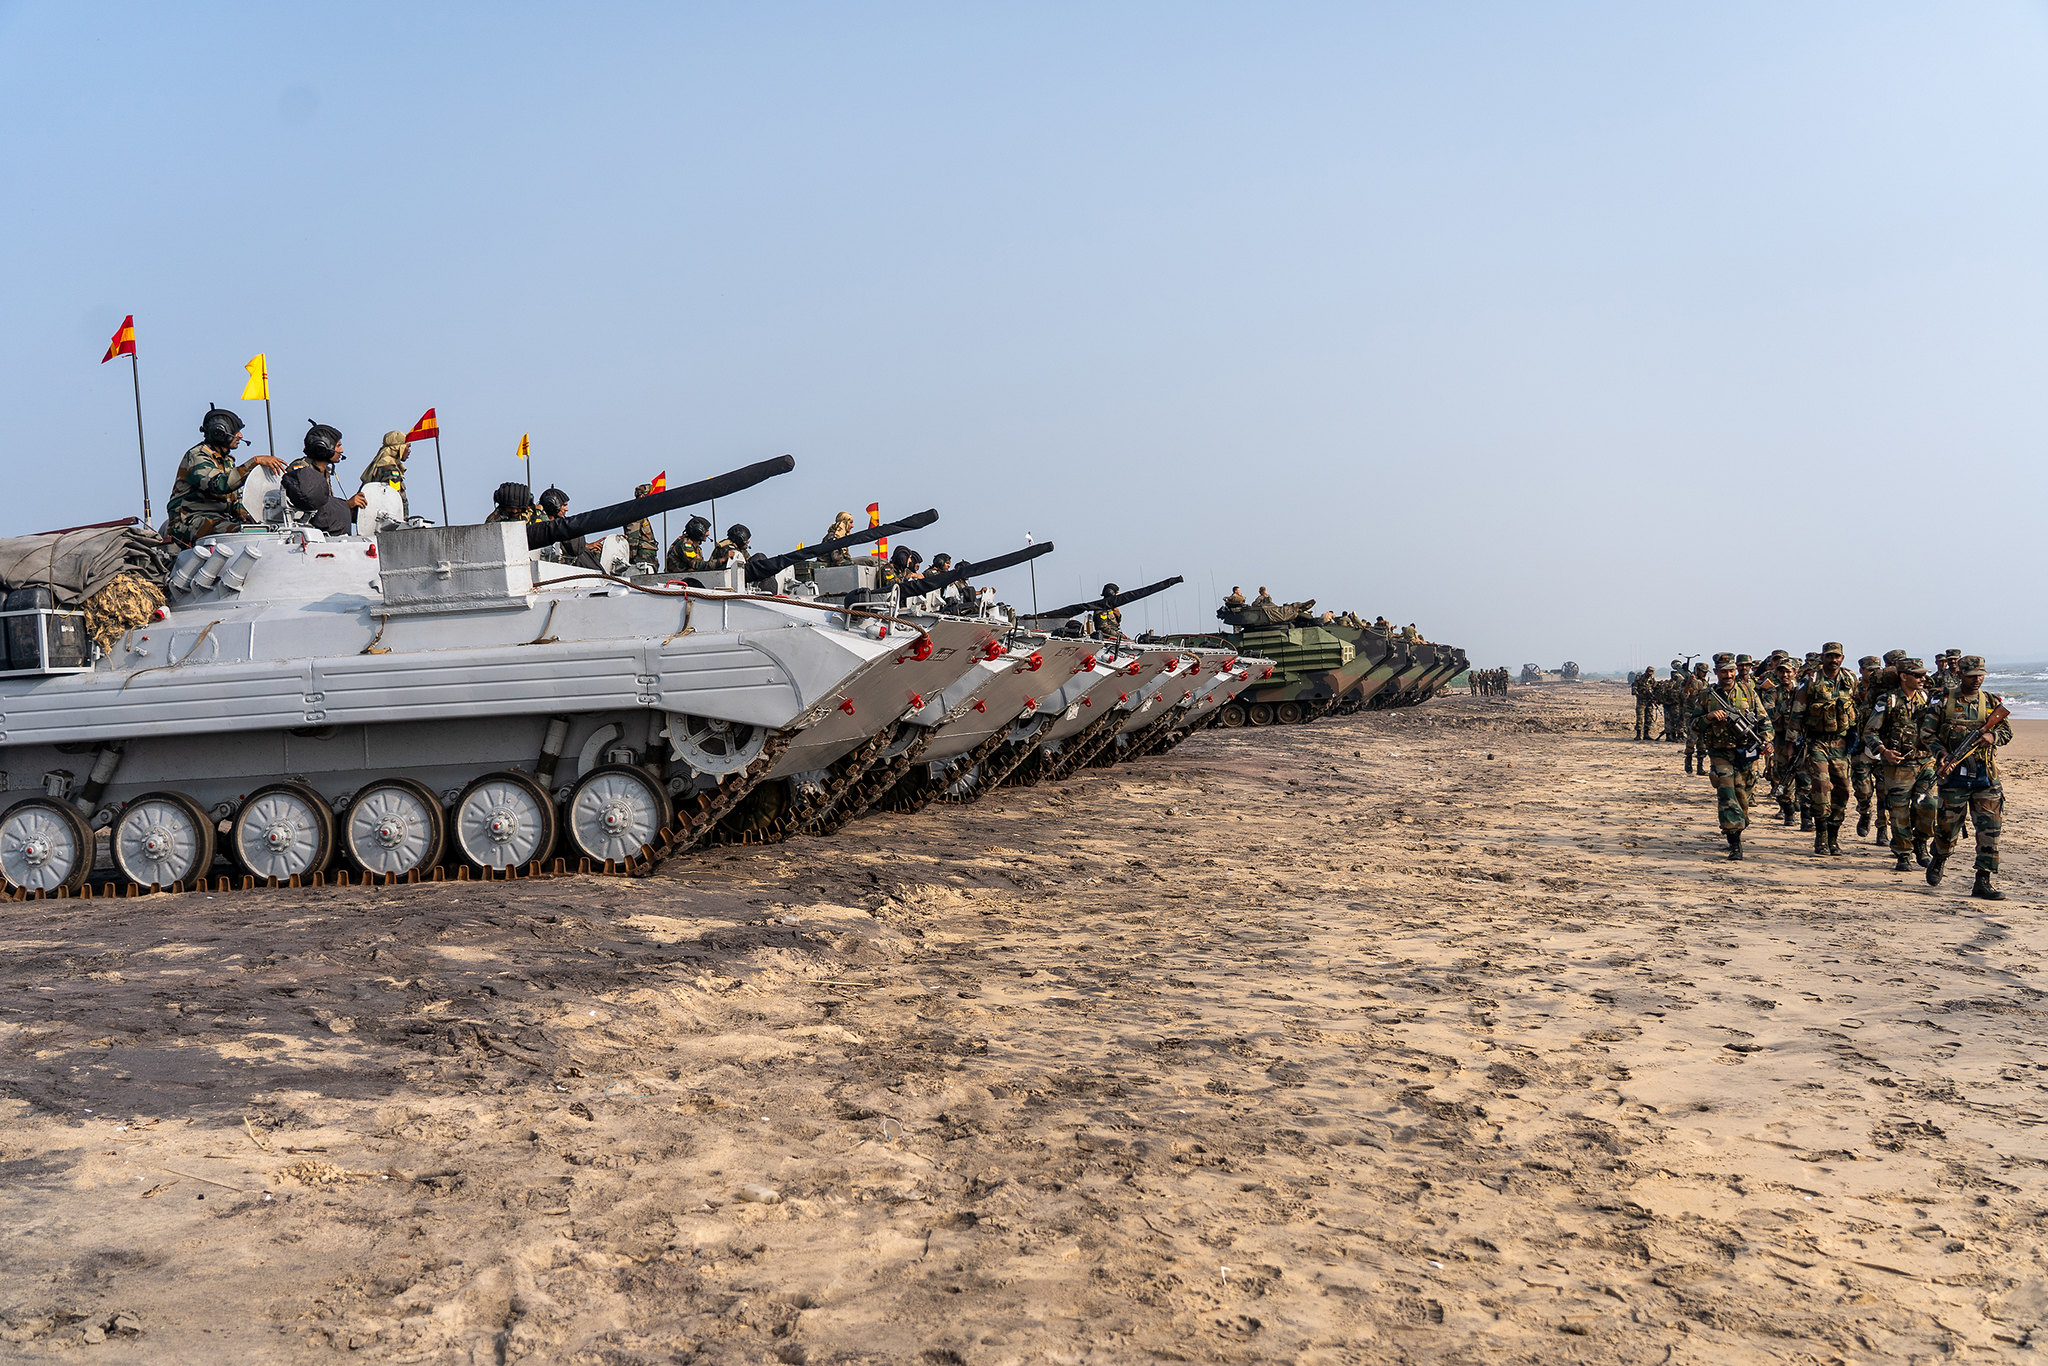 U.S. Marines and Indian soldiers prepare to depart Kakinada, India, at the conclusion of exercise Tiger TRIUMPH, Nov. 21, 2019. (1st Lt. Tori Sharpe/Marine Corps)